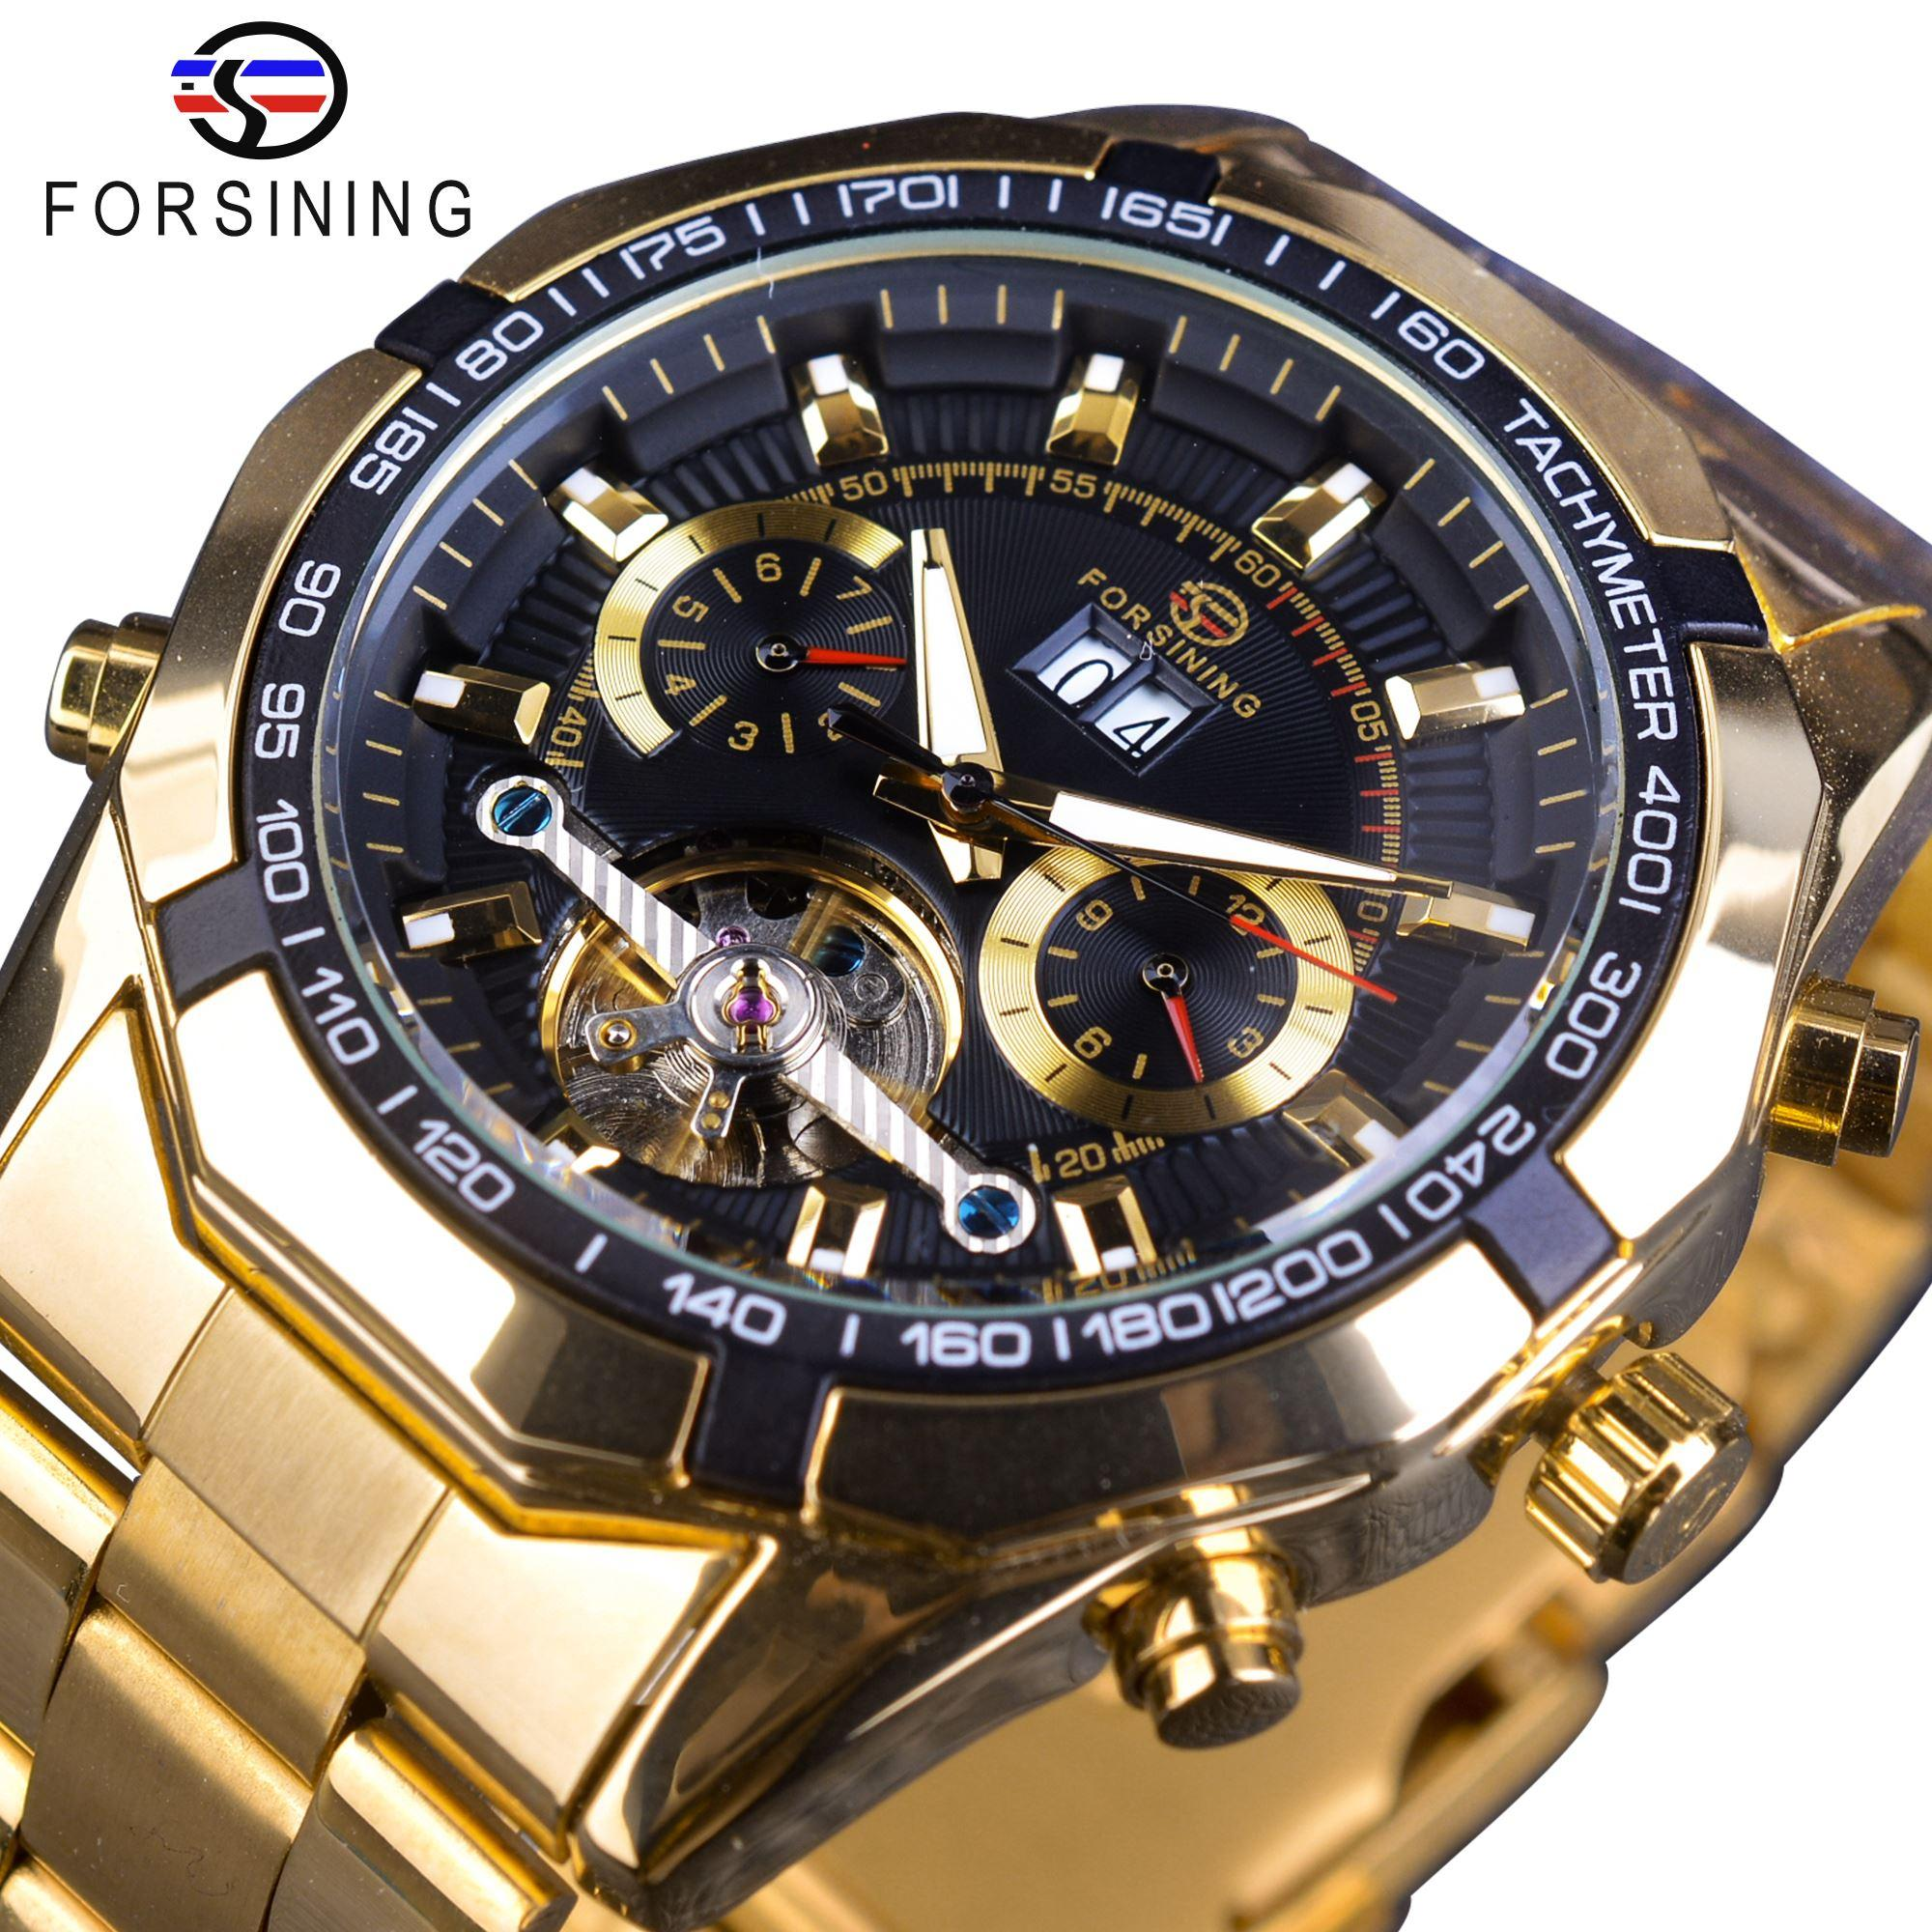 Orologio Calendario.X Forsining Orologio Meccanico Da Uomo Top Brand Luxury Golden Bracelet Business Orologio Calendario Display Quadrante Nero Design Tourbillon